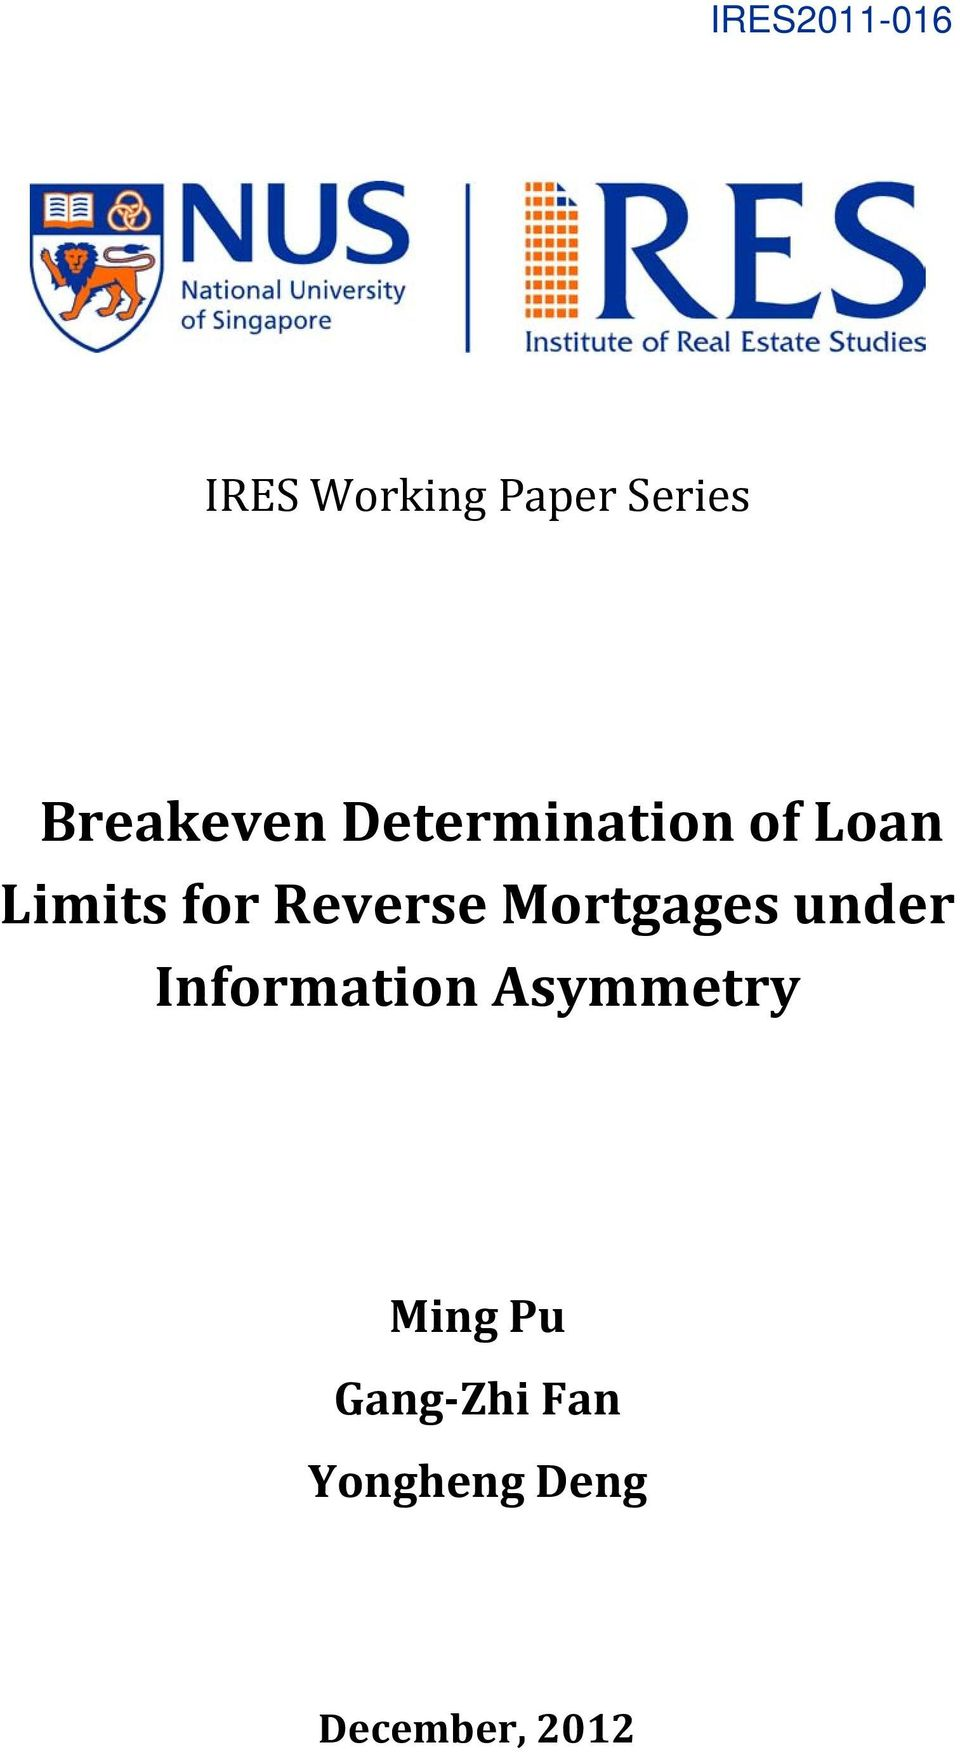 Reverse Morgages under Informaion